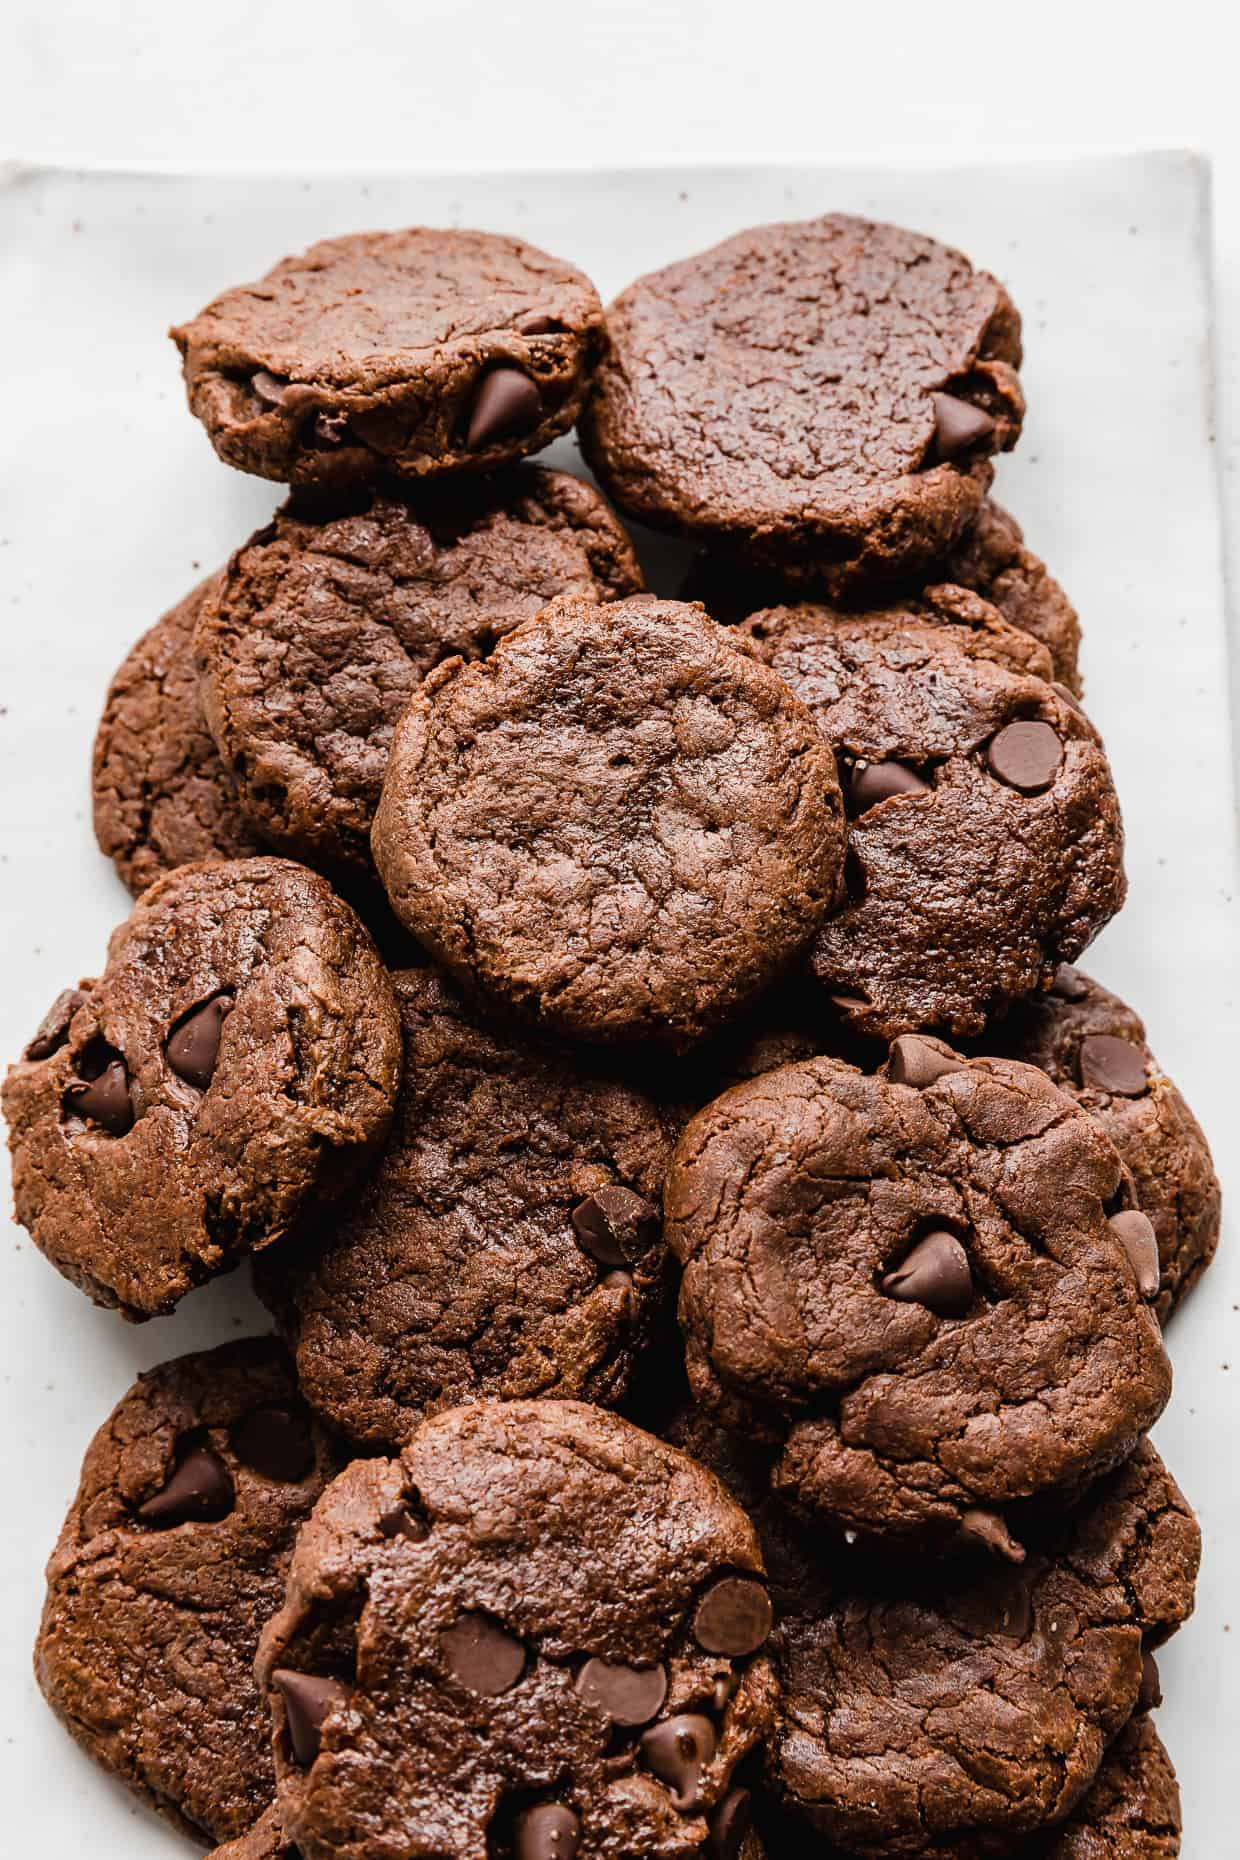 A plate of chocolate cookies on a white background.